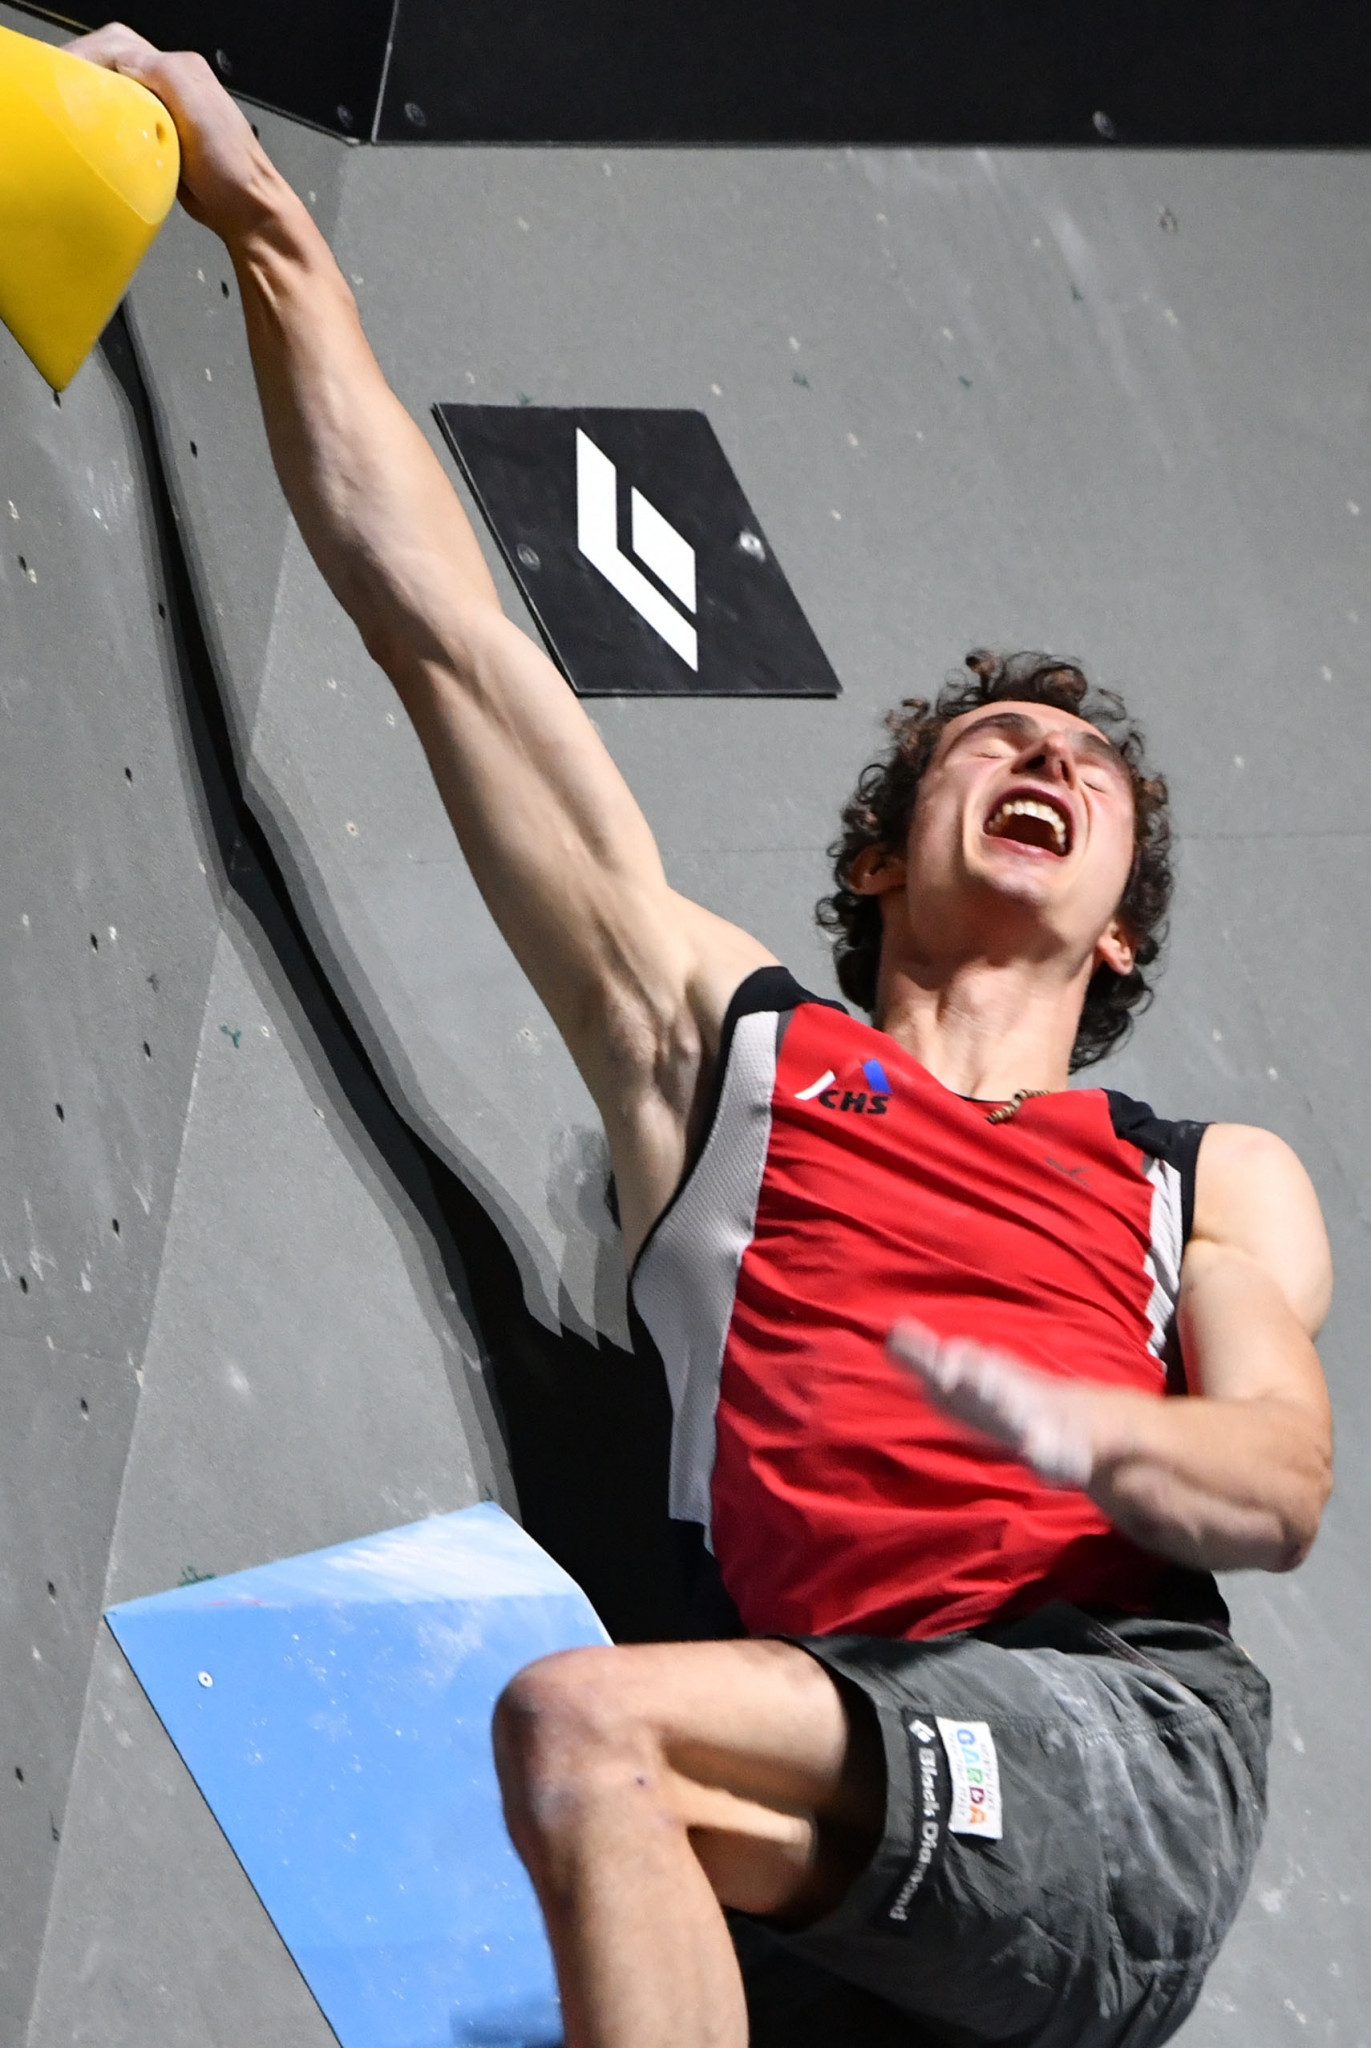 Adam Ondra, the Czech Republic's four-times world champion, faces tough opposition in the bouldering competition at the IFSC World Cup that starts in Chongqing, China tomorrow ©Getty Images